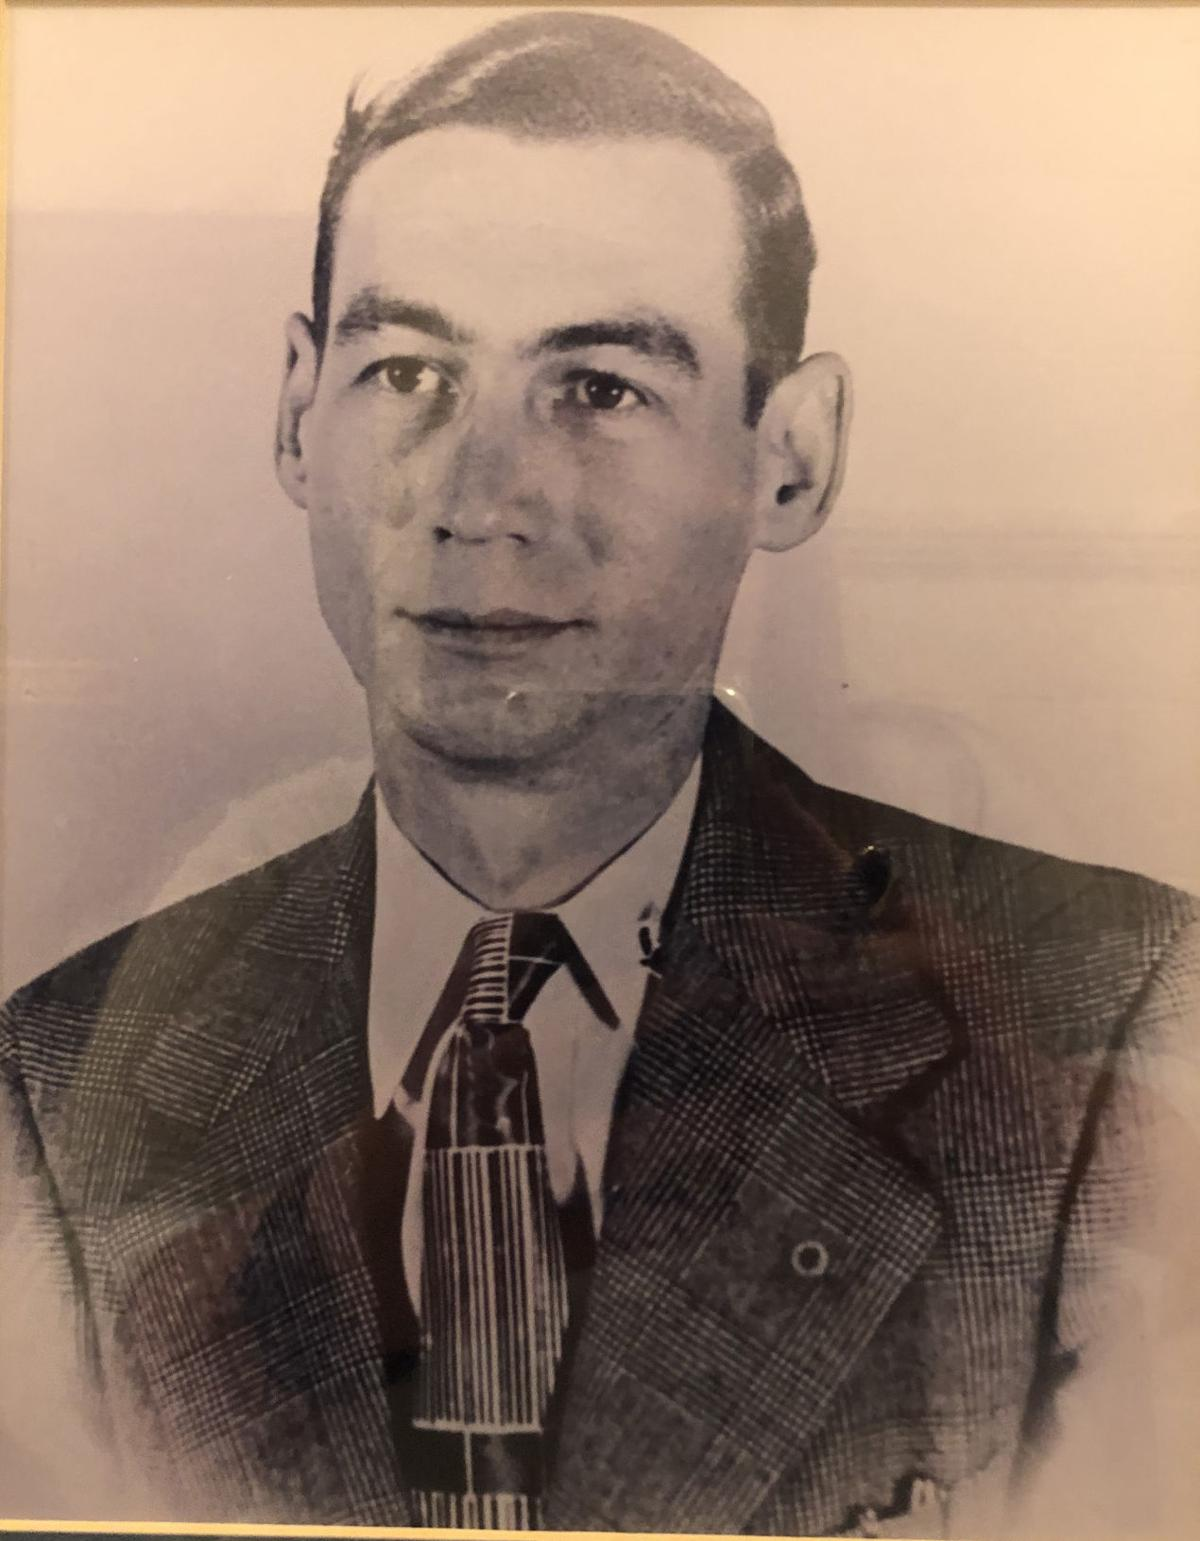 Joseph Asbury Dennis, Jr. is the only officer with the South Hill P.D. to be killed in the line of duty in May of 1953.